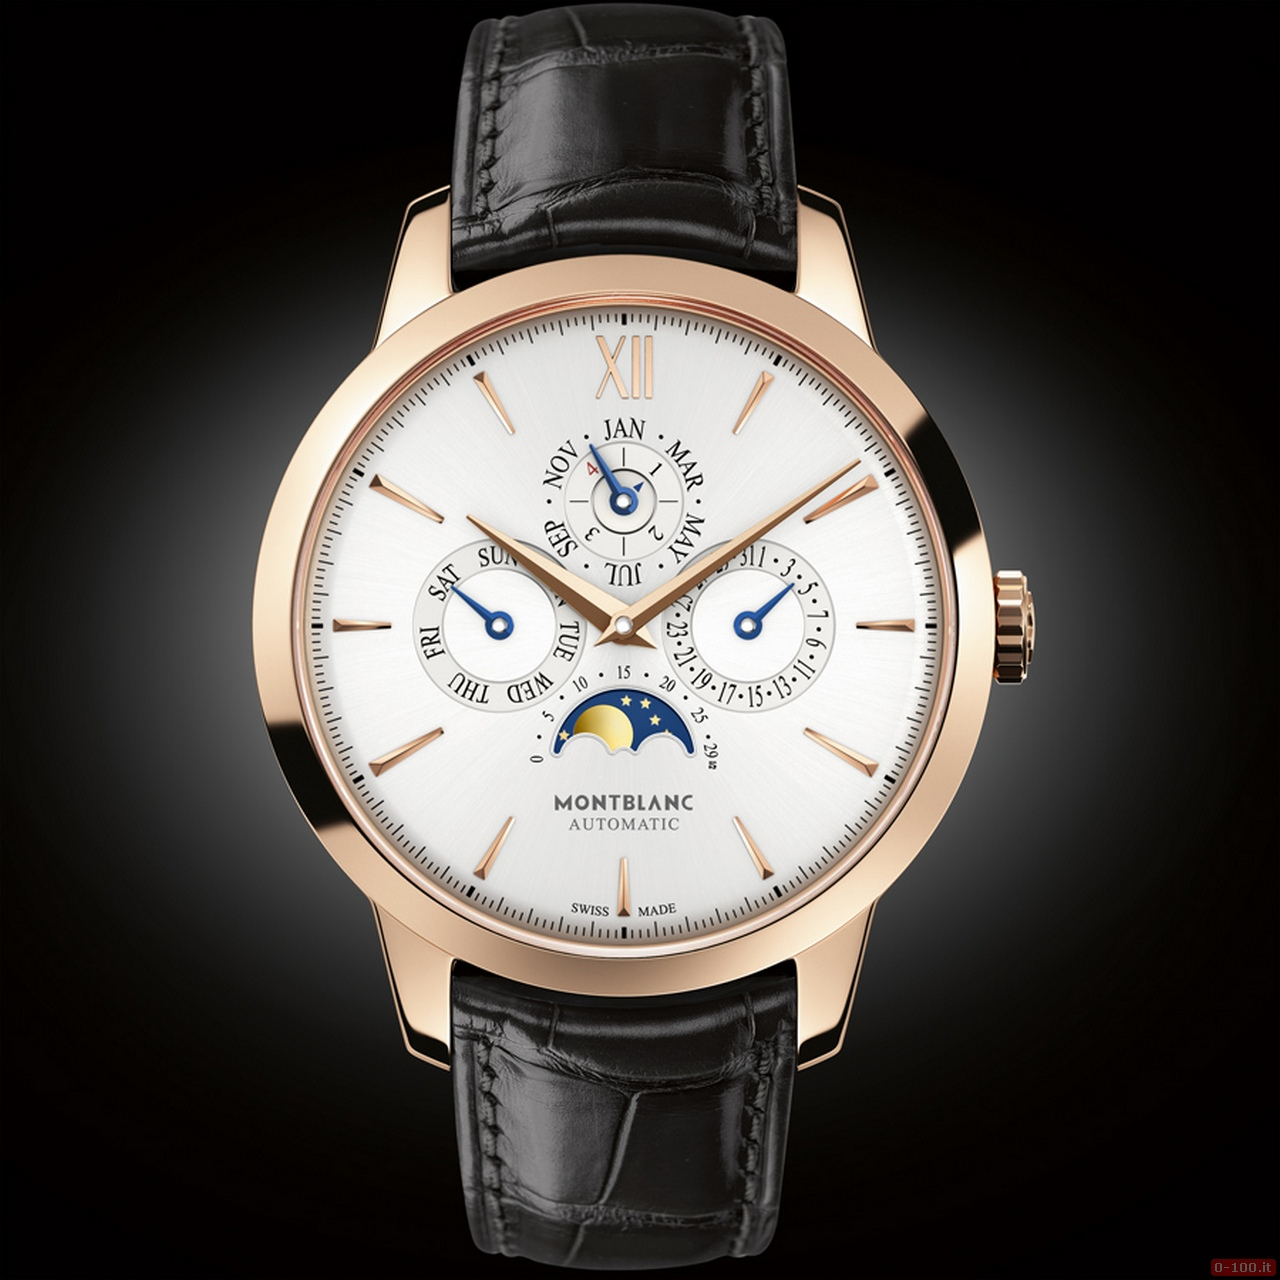 sihh-2014-montblanc-meisterstuck-heritage-perpetual-calendar-prezzo-price_0-1001